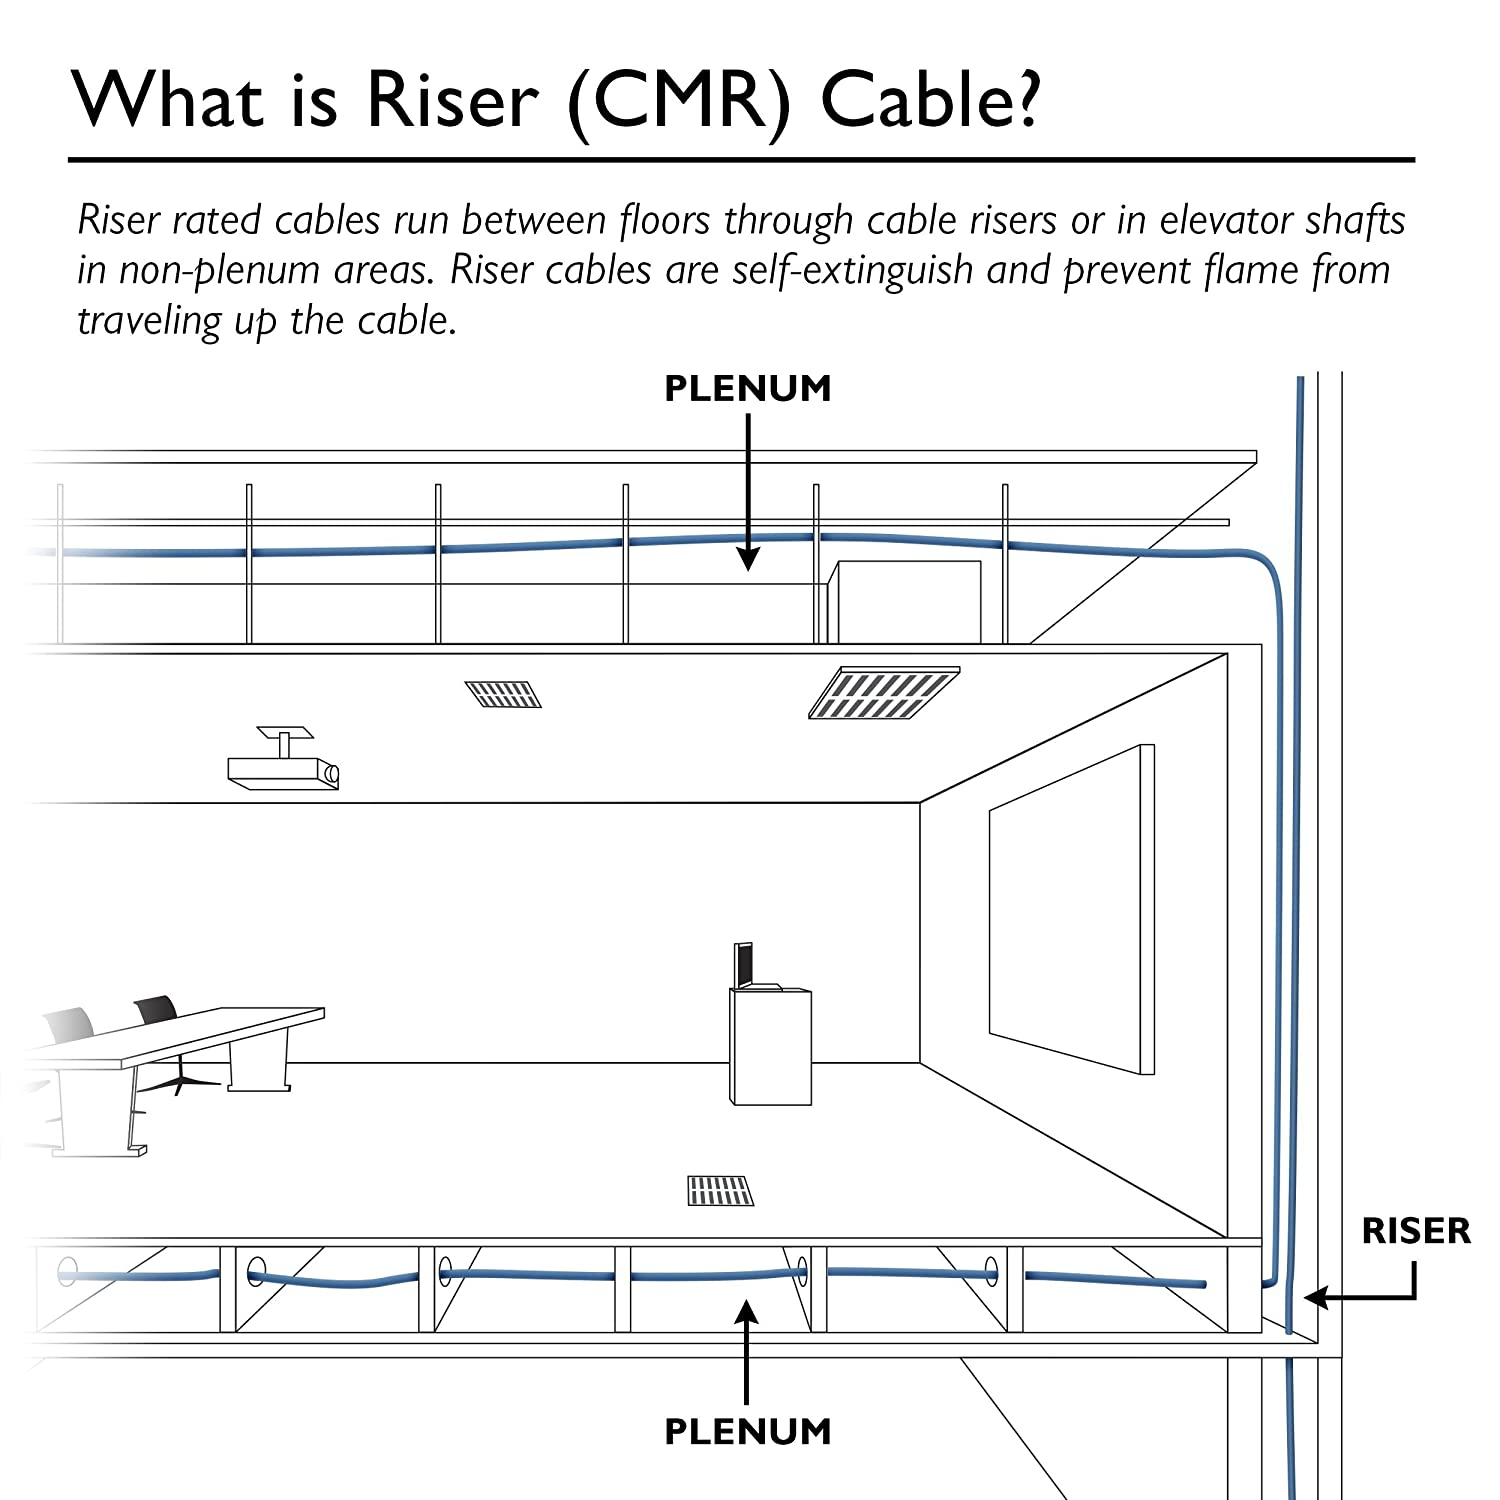 Riser Cabling Diagram Wiring Master Blogs Structured Network Gearit 1000 Feet Bulk Cat5e Rated Ethernet Cable Amazon Co Uk Rh Job